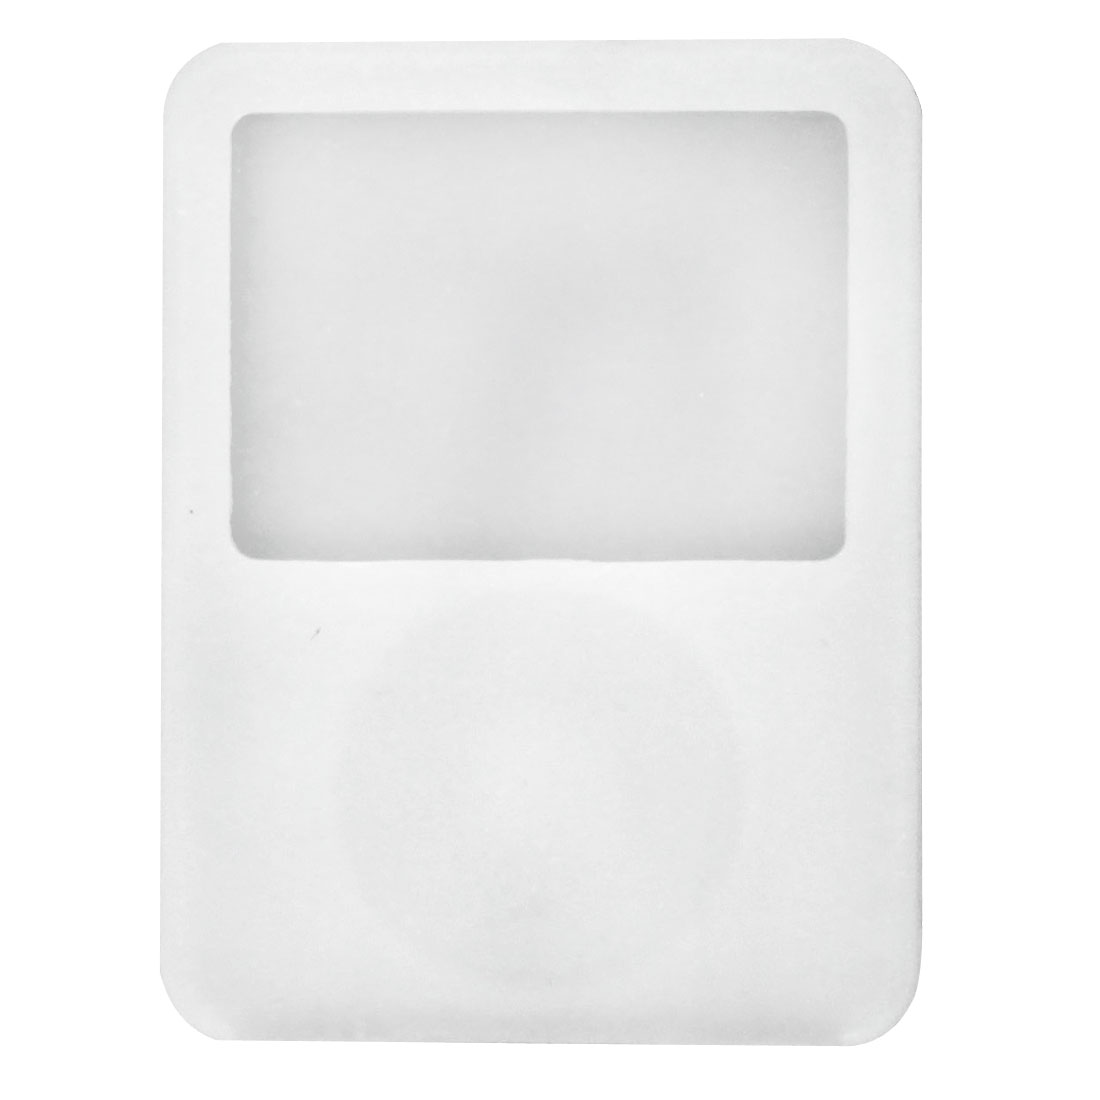 White Silicone Case for iPod Nano 3G